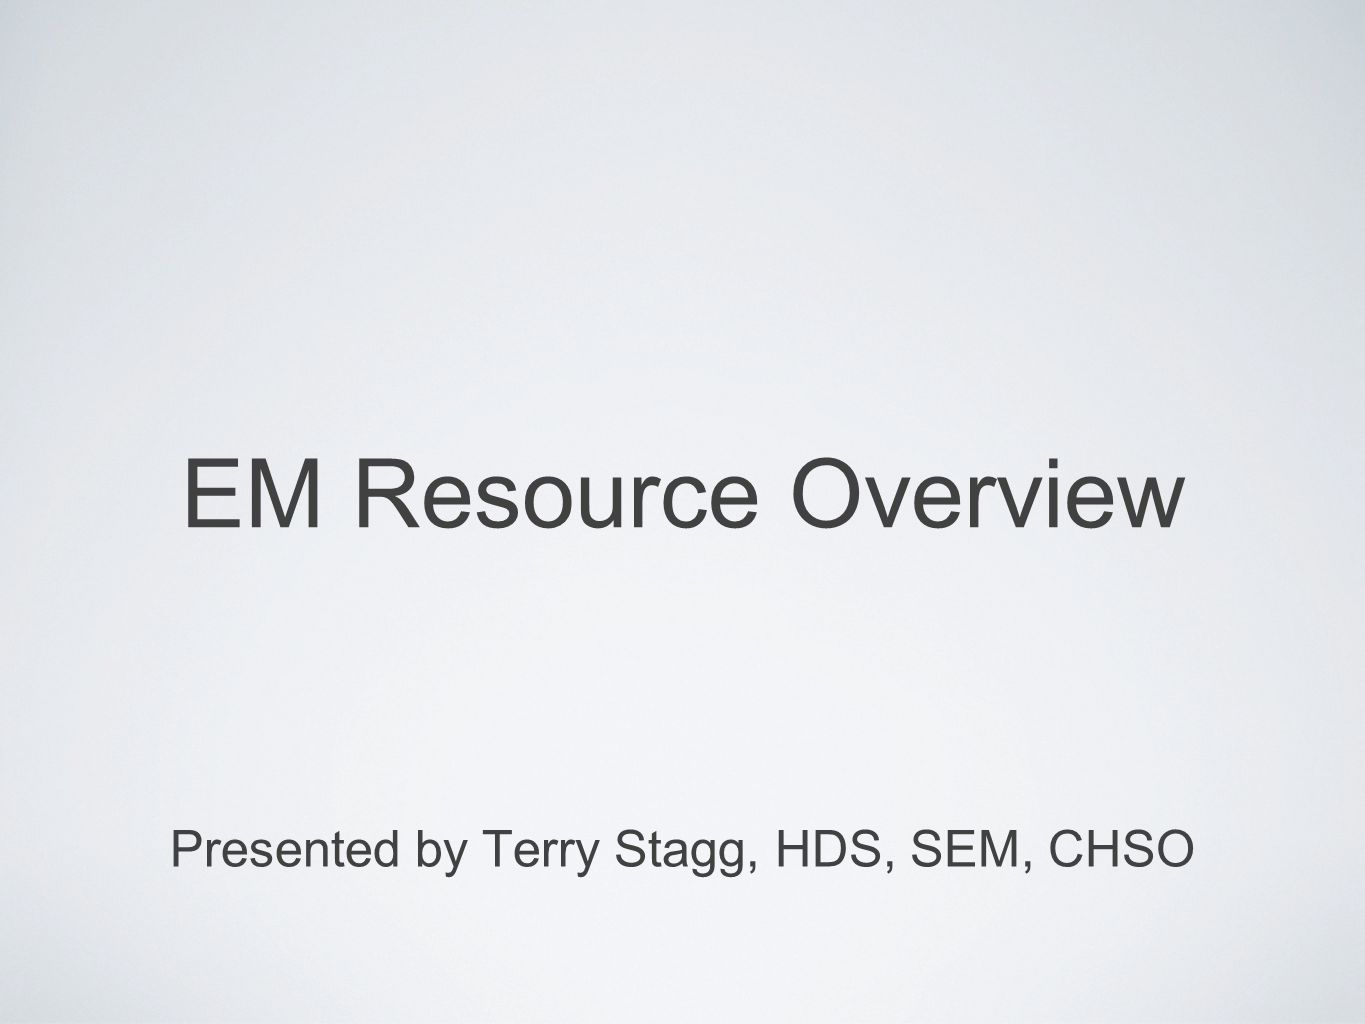 EM Resource Overview Presented by Terry Stagg, HDS, SEM, CHSO